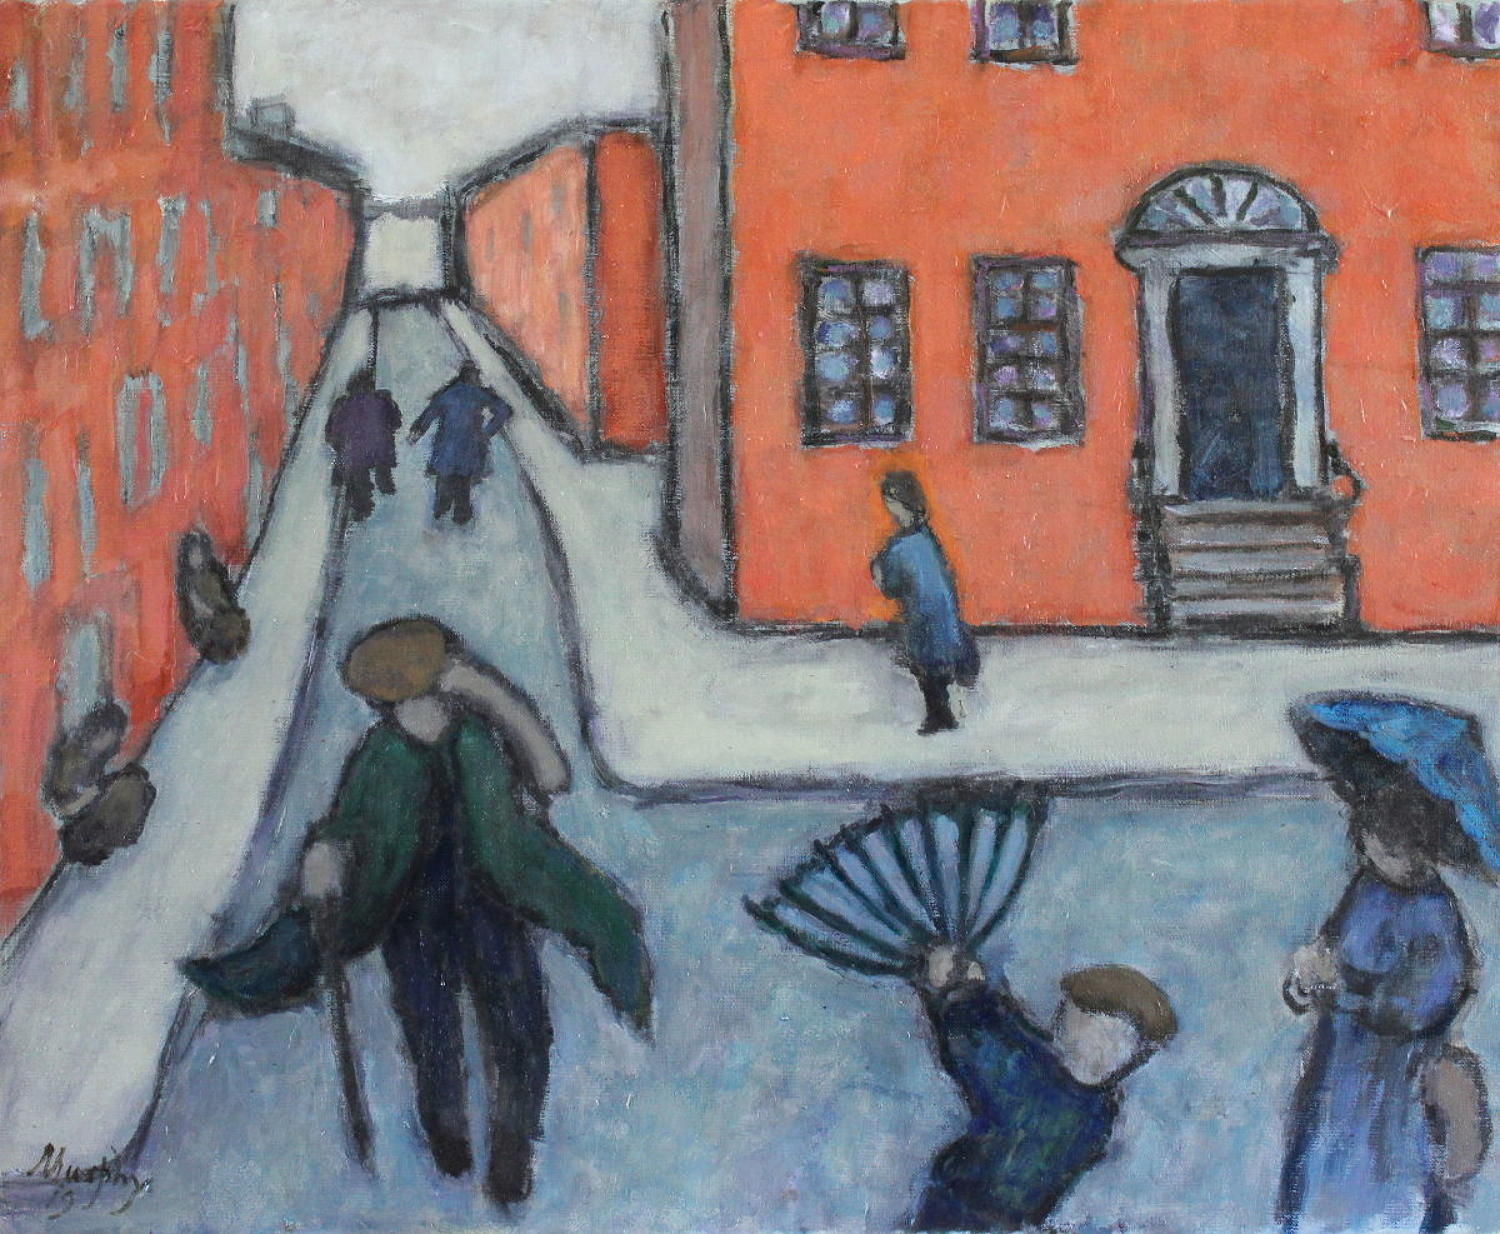 Anthony Murphy. A blustery day in Dublin